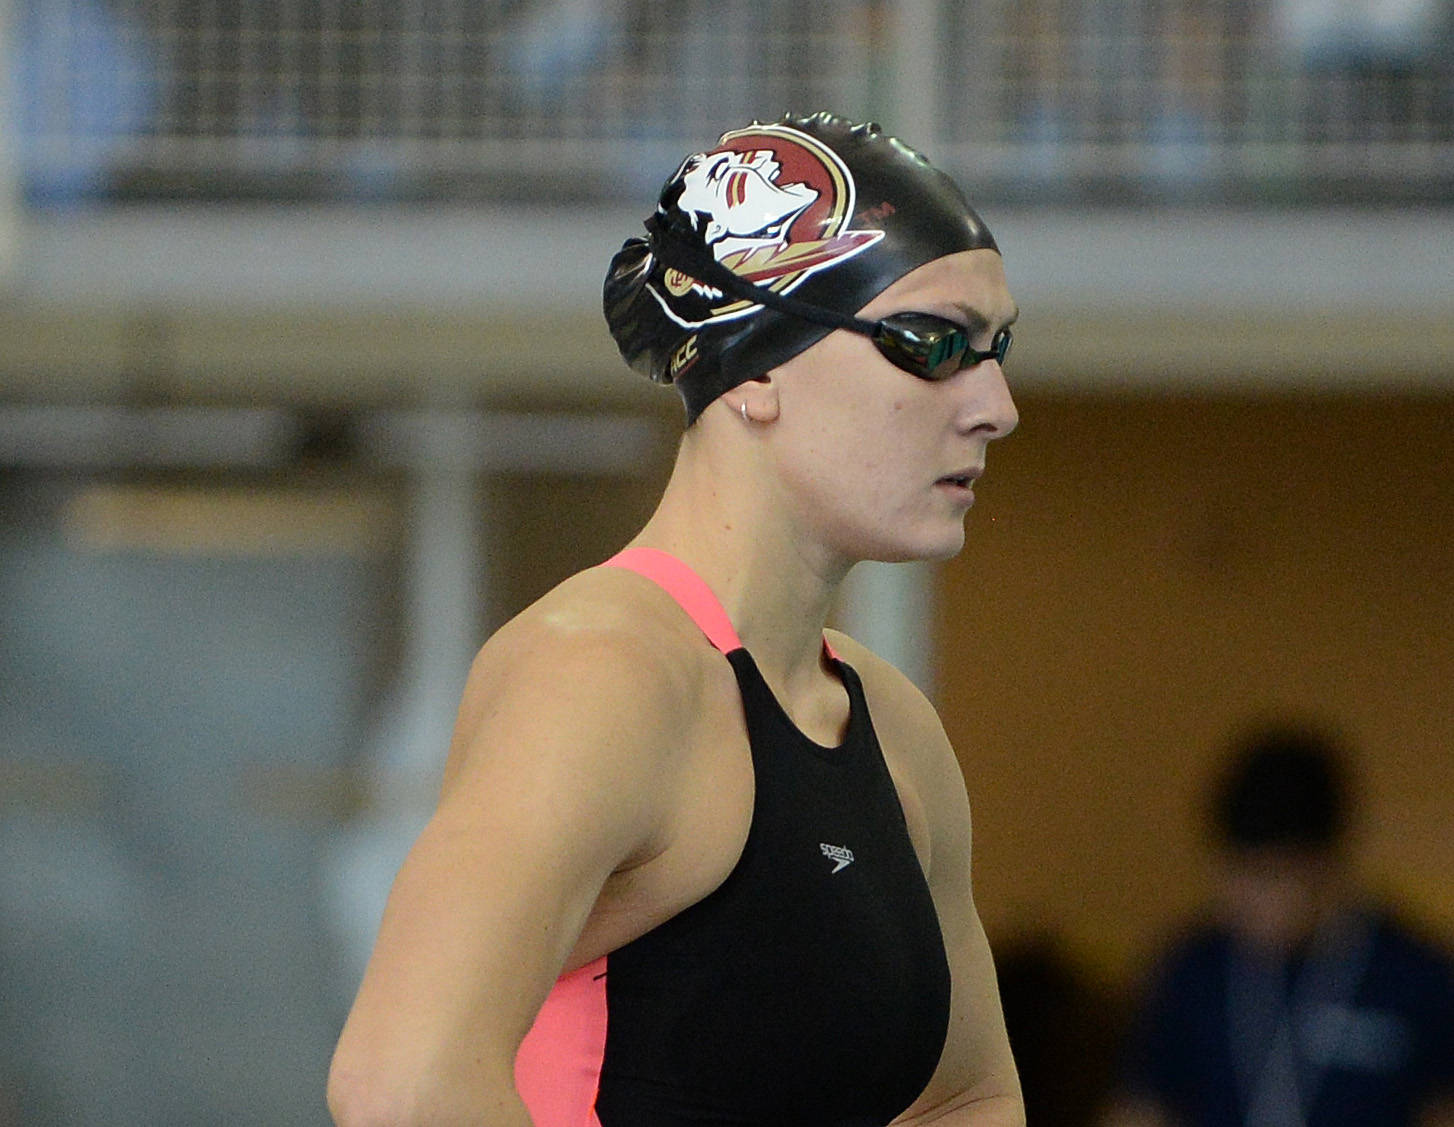 Chelsea Britt relaxes before the 100 fly - Mitch White